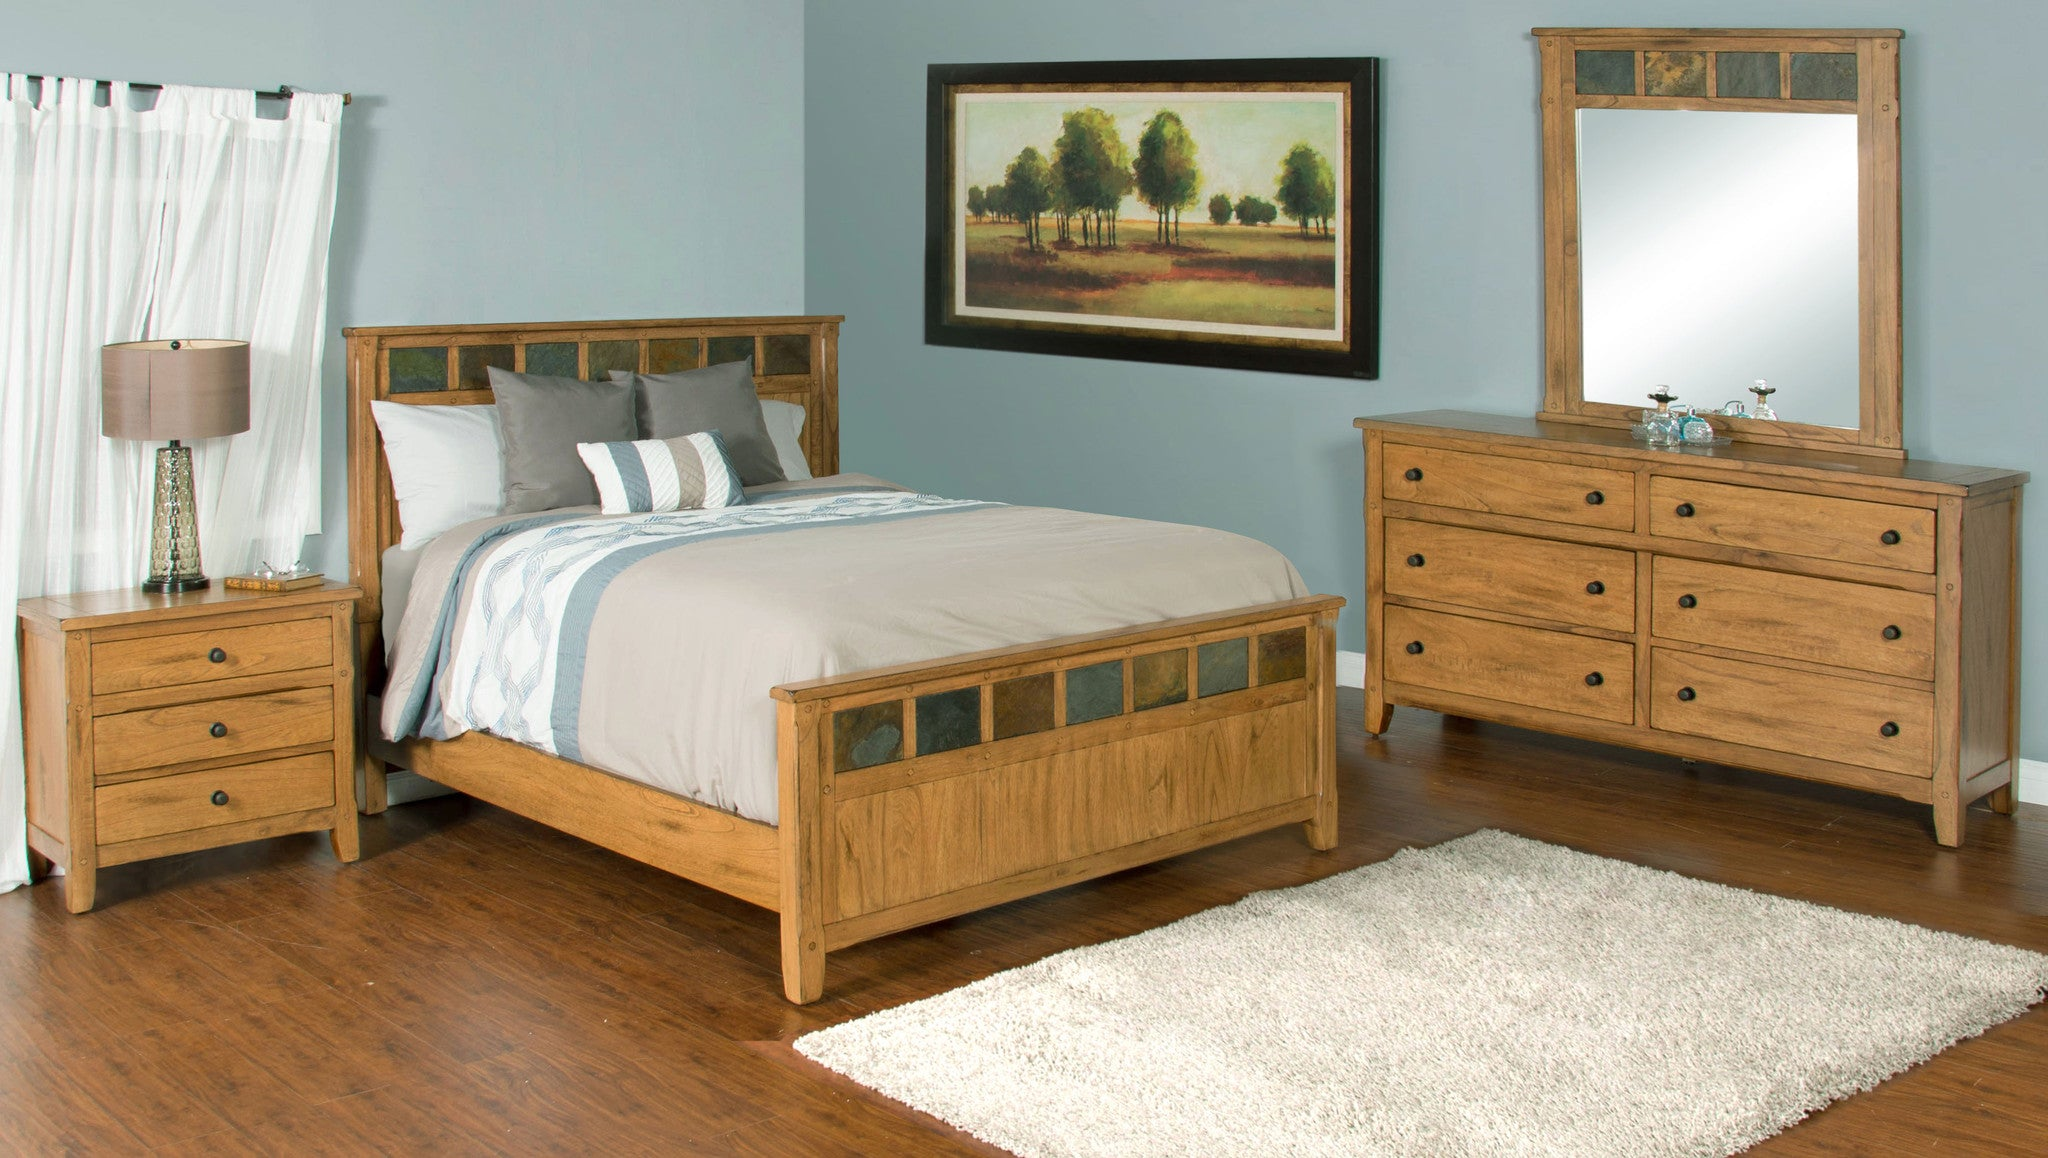 Sedona rustic petite panel bedroom suite queen size for Rustic bedroom furniture suites